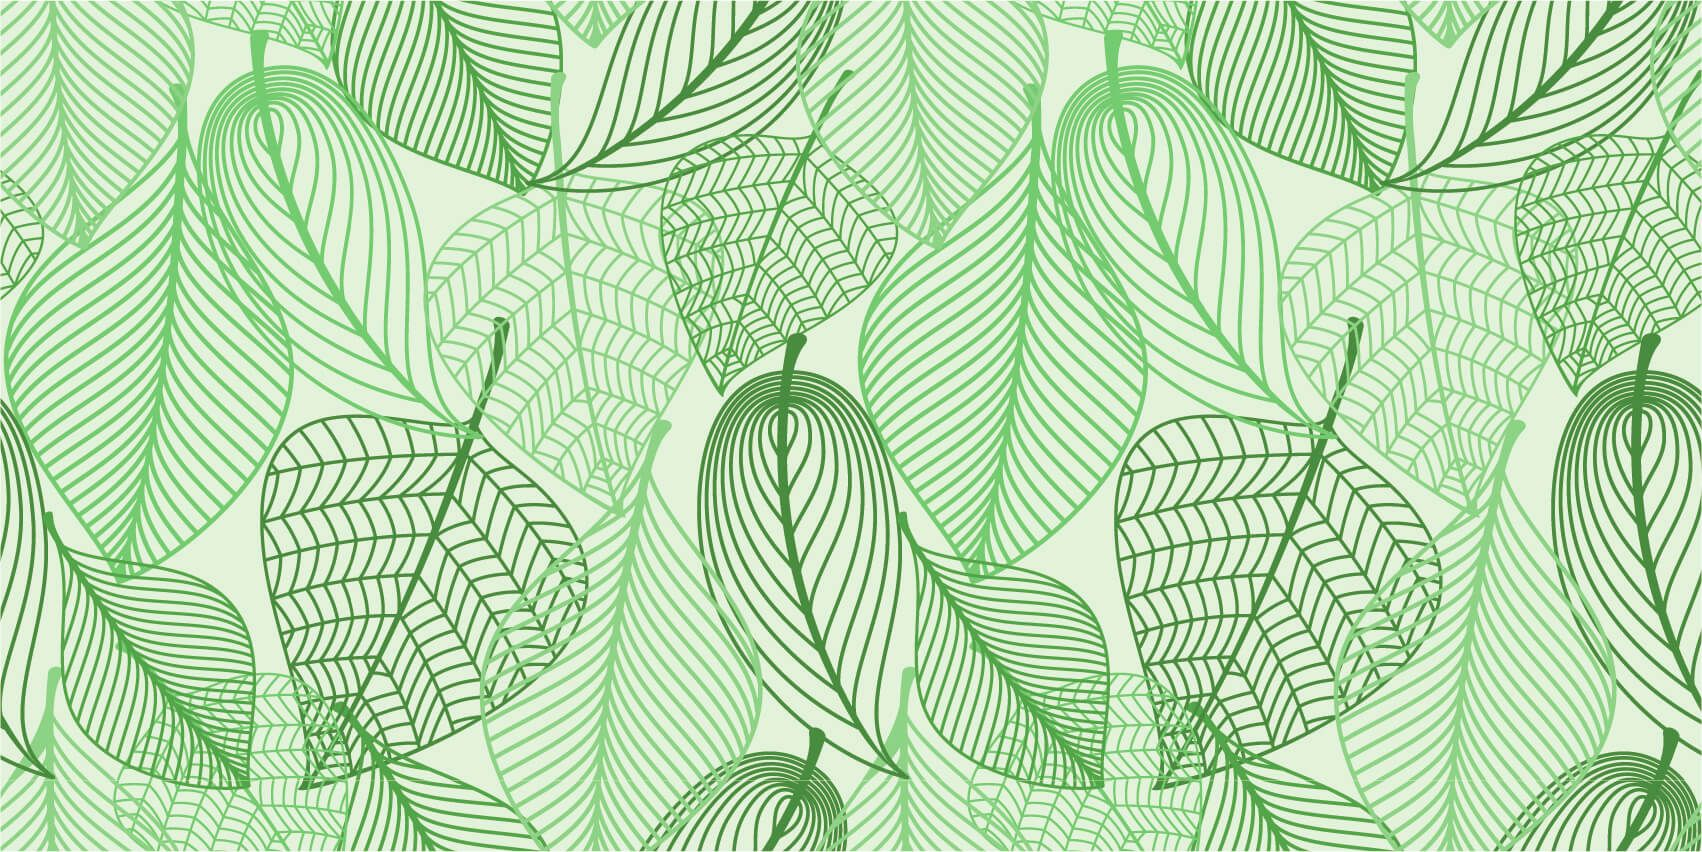 Other - Green leaves drawn - Bedroom